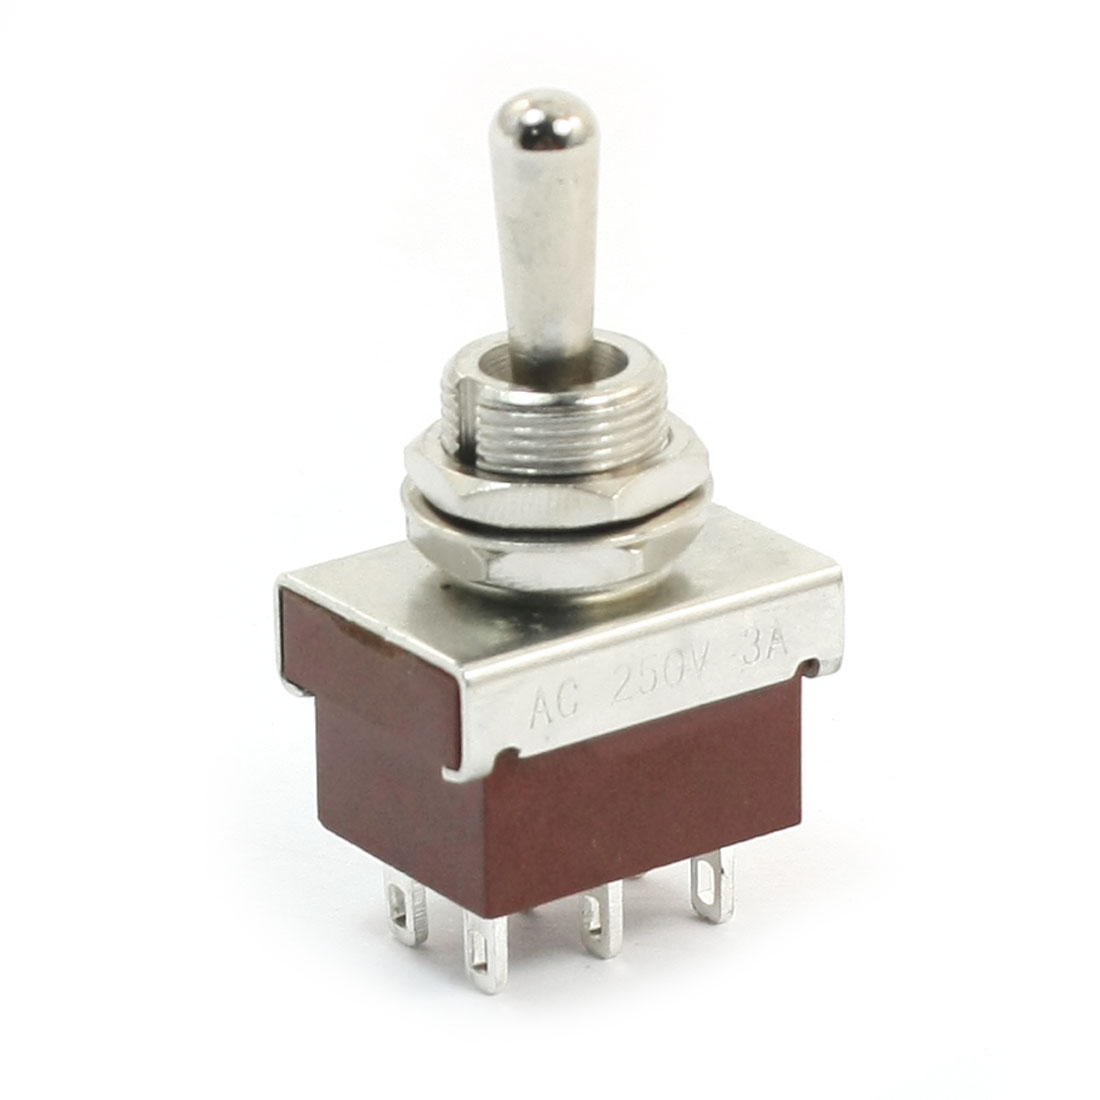 12mm Panel Mount DPDT ON/OFF/ON Locking Toggle Switch AC250V 3A